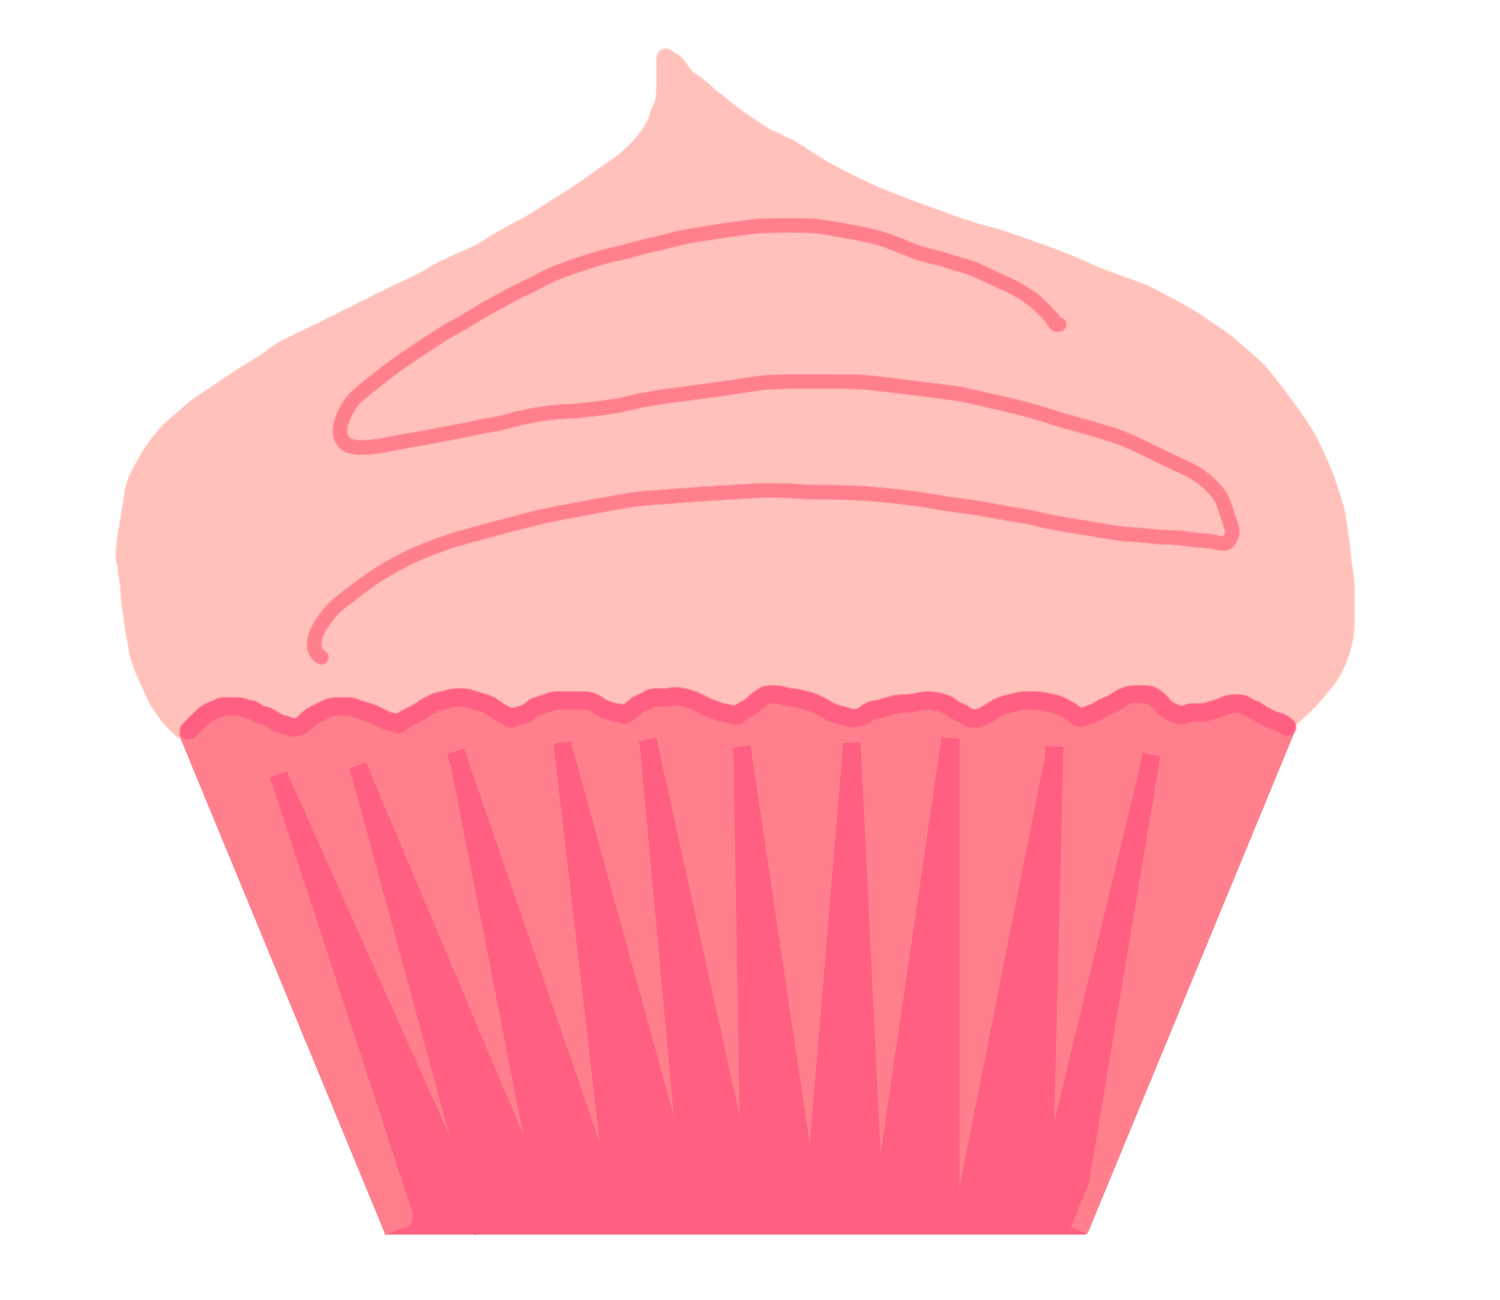 Cupcakes With Sprinkles Clipart.